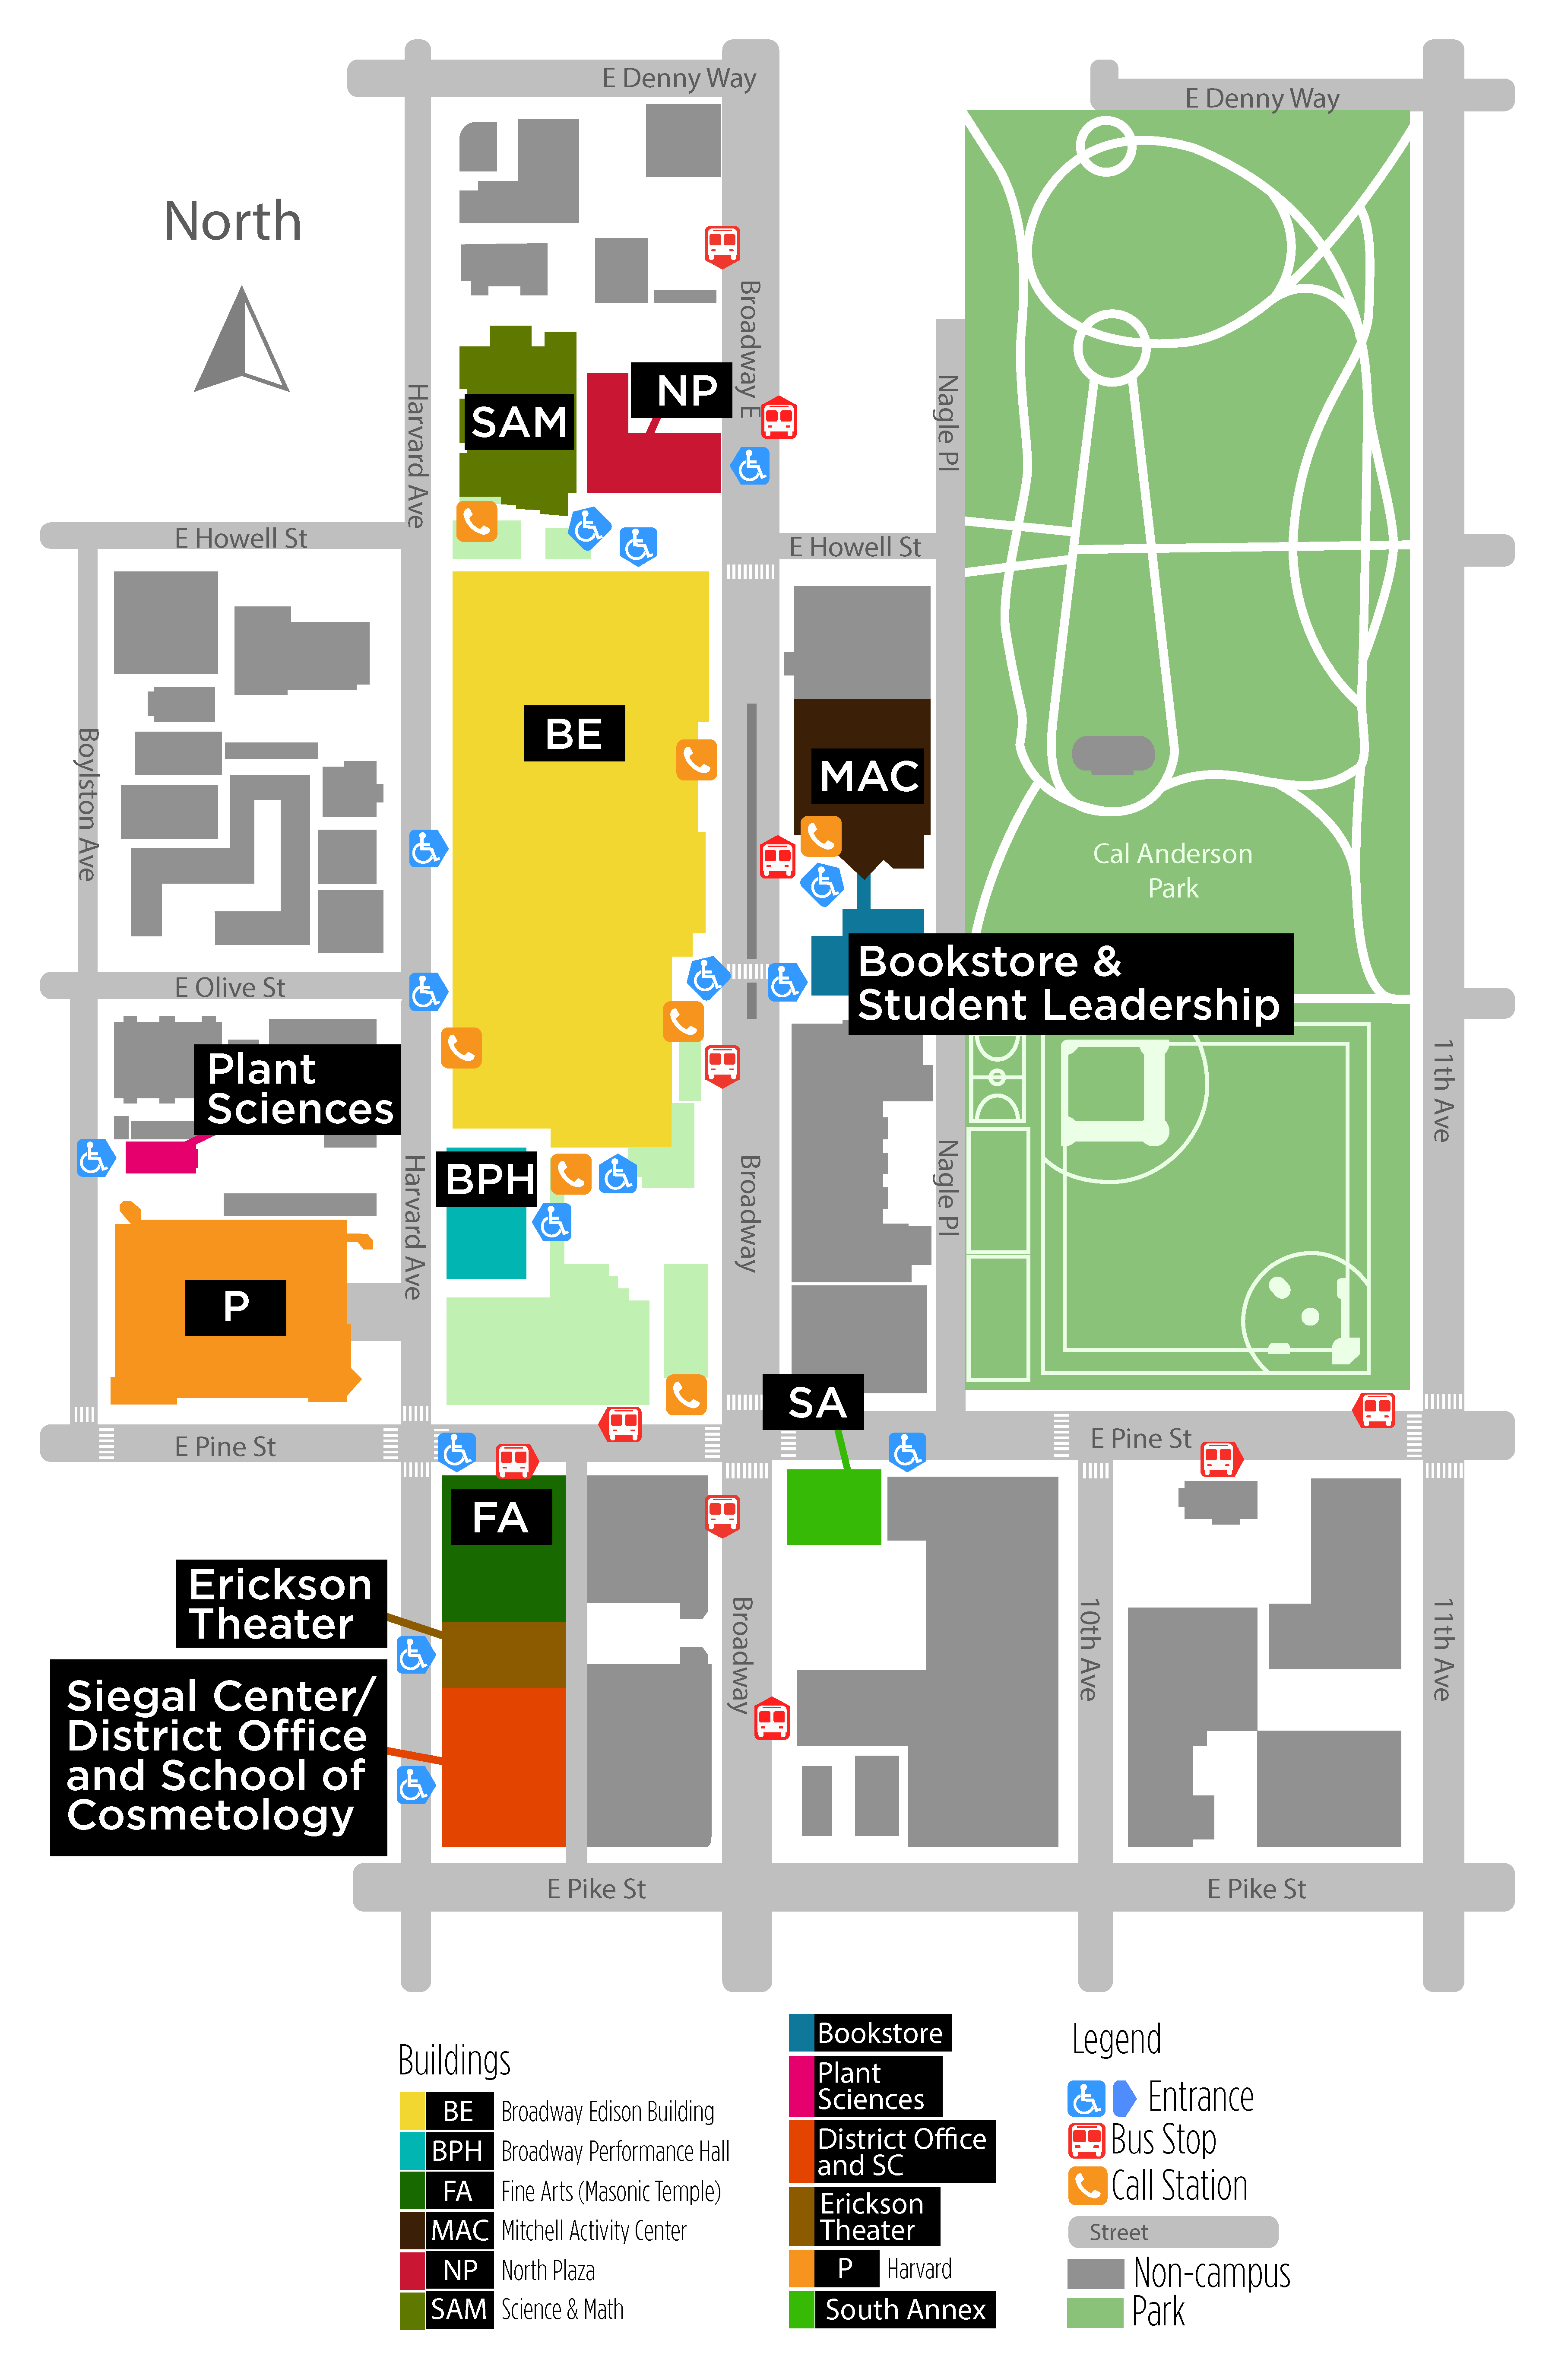 Cpcc Main Campus Map.Central Community College Campus Map Www Picsbud Com